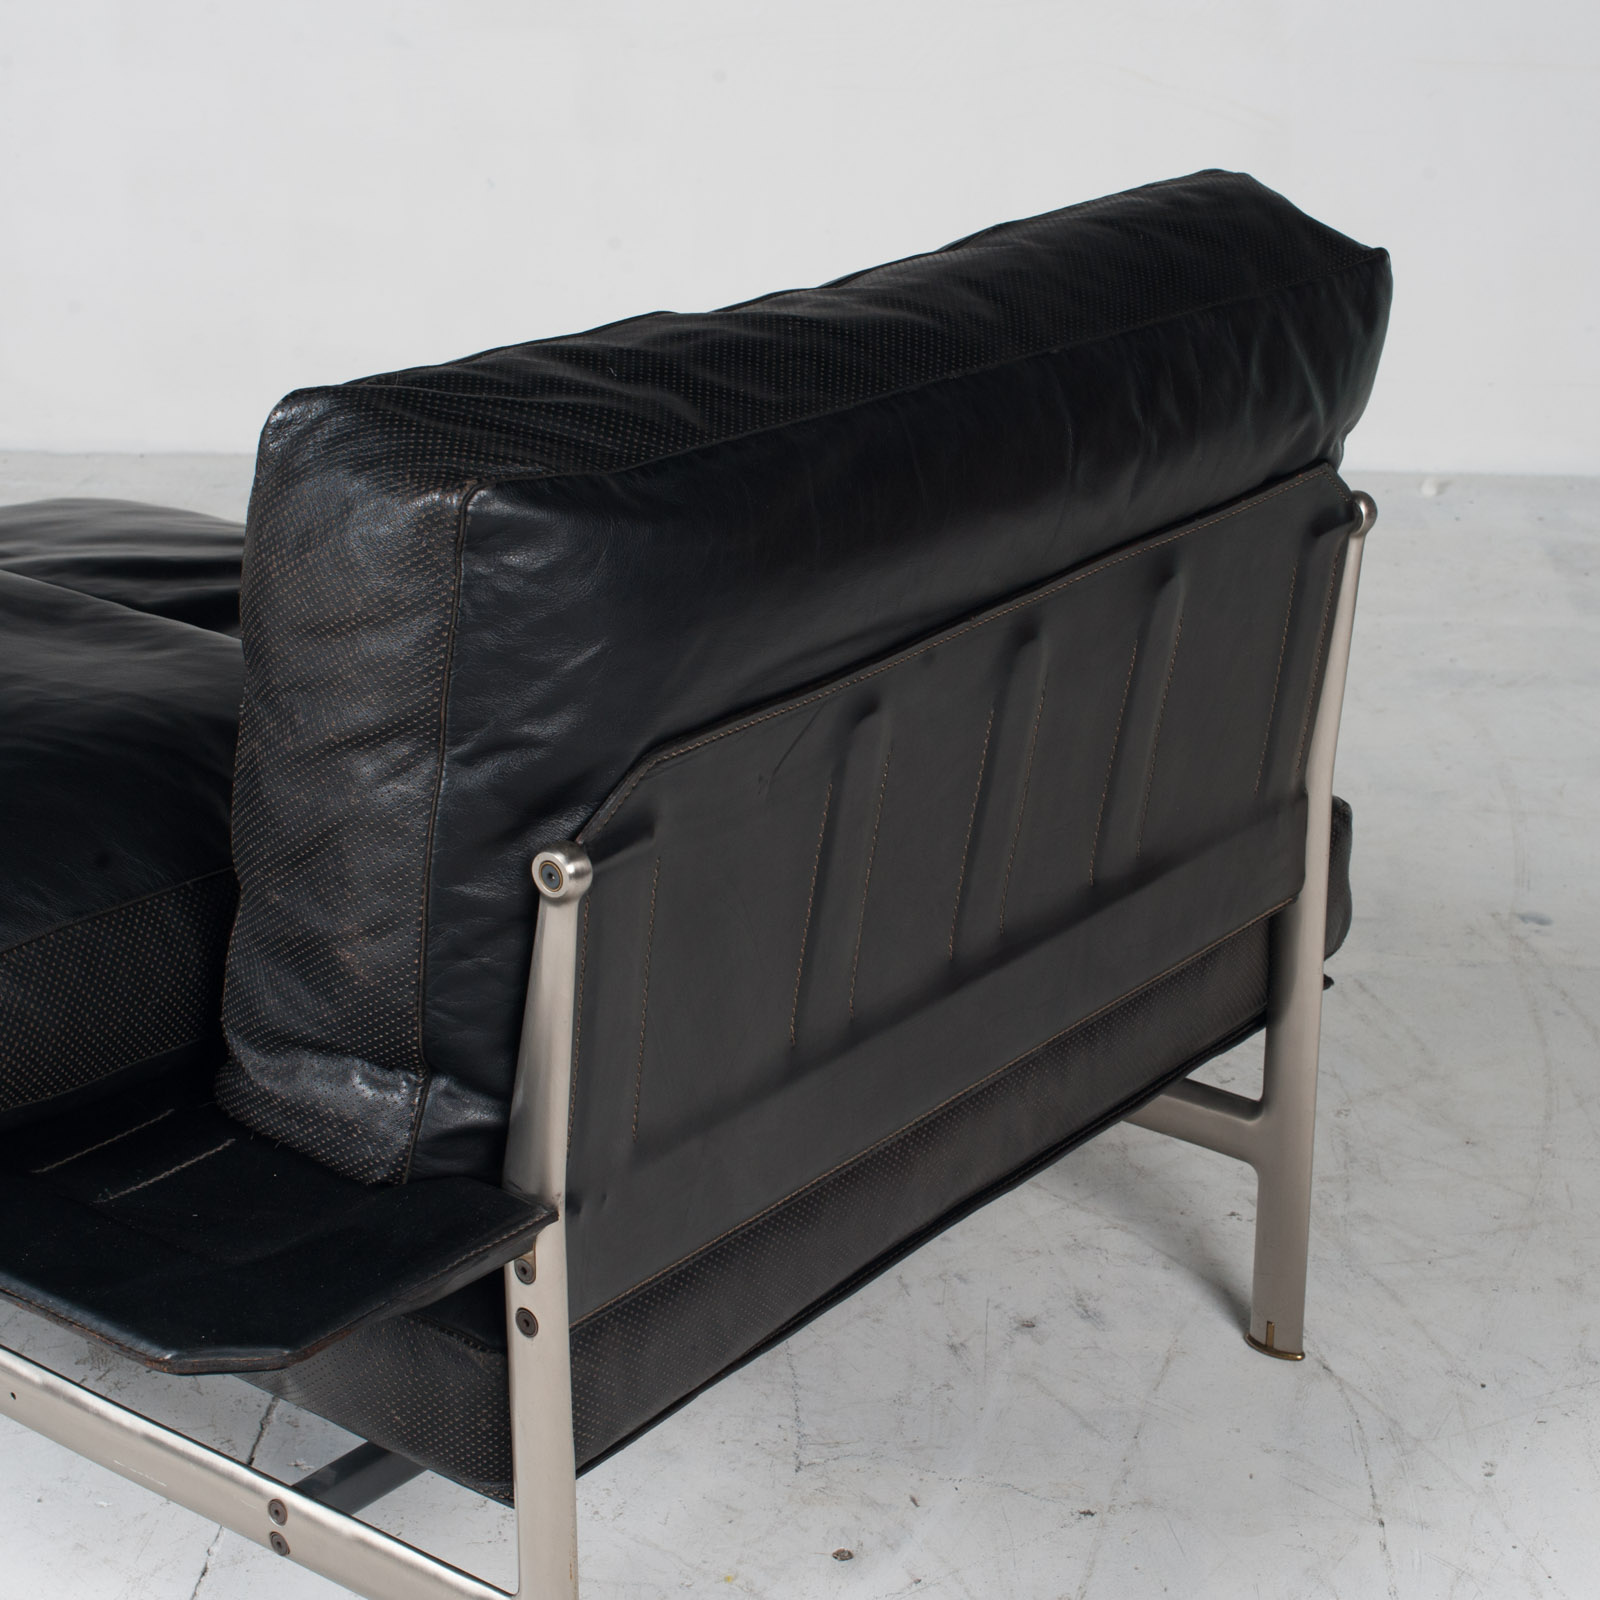 Model Diesis Chaise Lounge For B&b Italia By Antonio Citterio In Black Leather 1970s Italy 15